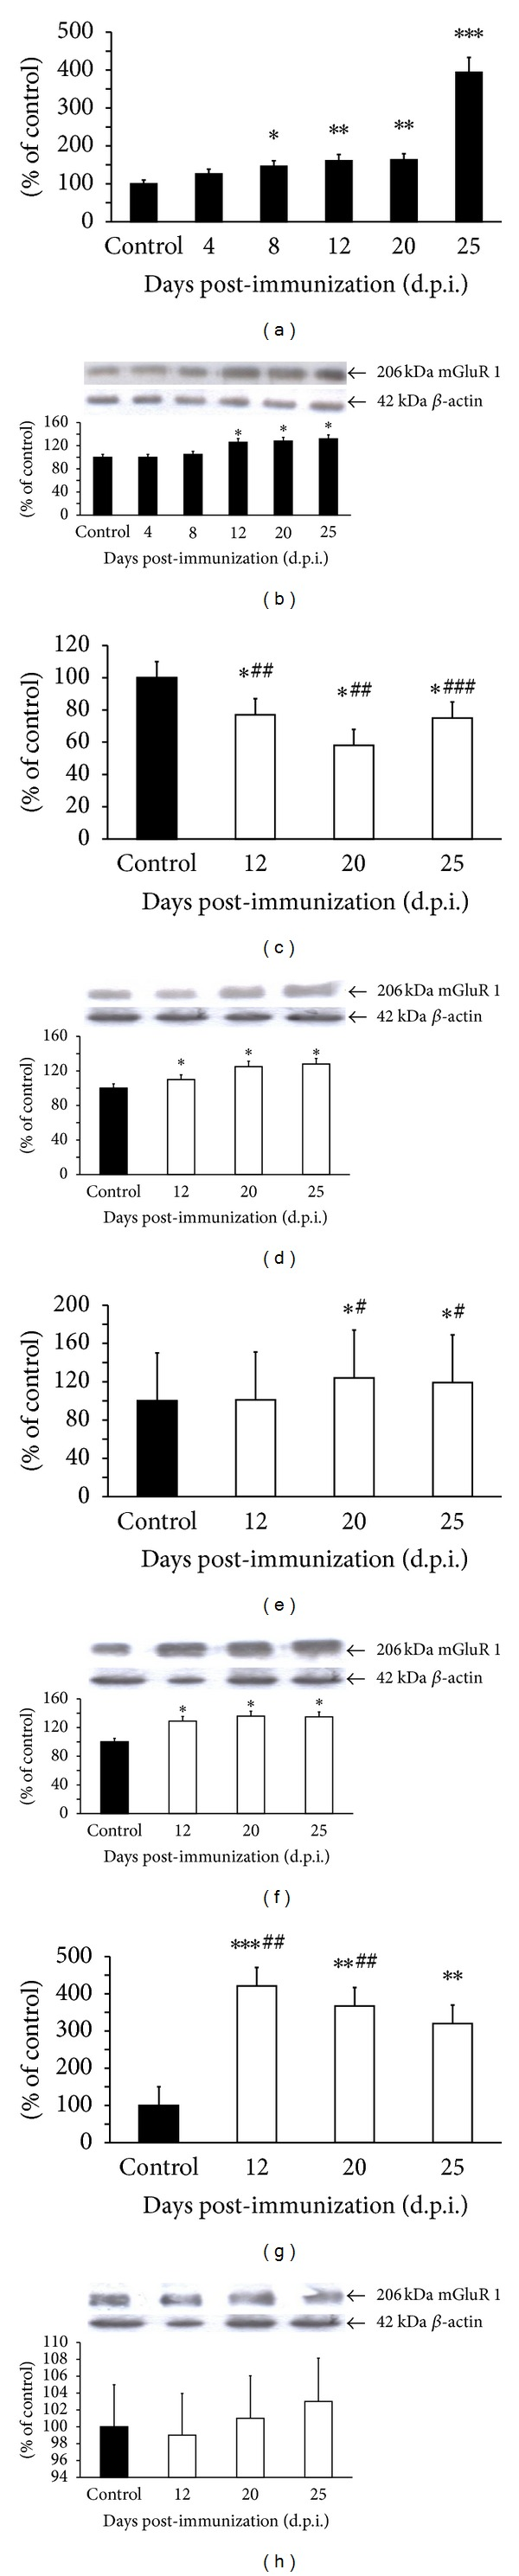 Expression of mGluR1 mRNA (a, c, e, and g) and protein (b, d, f, and h) in forebrain of control and EAE rats at different times post-immunization (a and b) and after therapeutic treatment with antagonists of glutamate receptors: amantadine (c and d), memantine (e and f), and LY 367385 (g and h). Total RNA was prepared from healthy control rats, rats with EAE, and rats with EAE after therapy at the indicated d.p.i. The mGluR1 mRNA levels were determined by quantitative real-time PCR (see Section 2 ) and normalized against actin. Graphs (a), (c), (e), and (g) present the results expressed as percentage of control from four independent experiments. * P